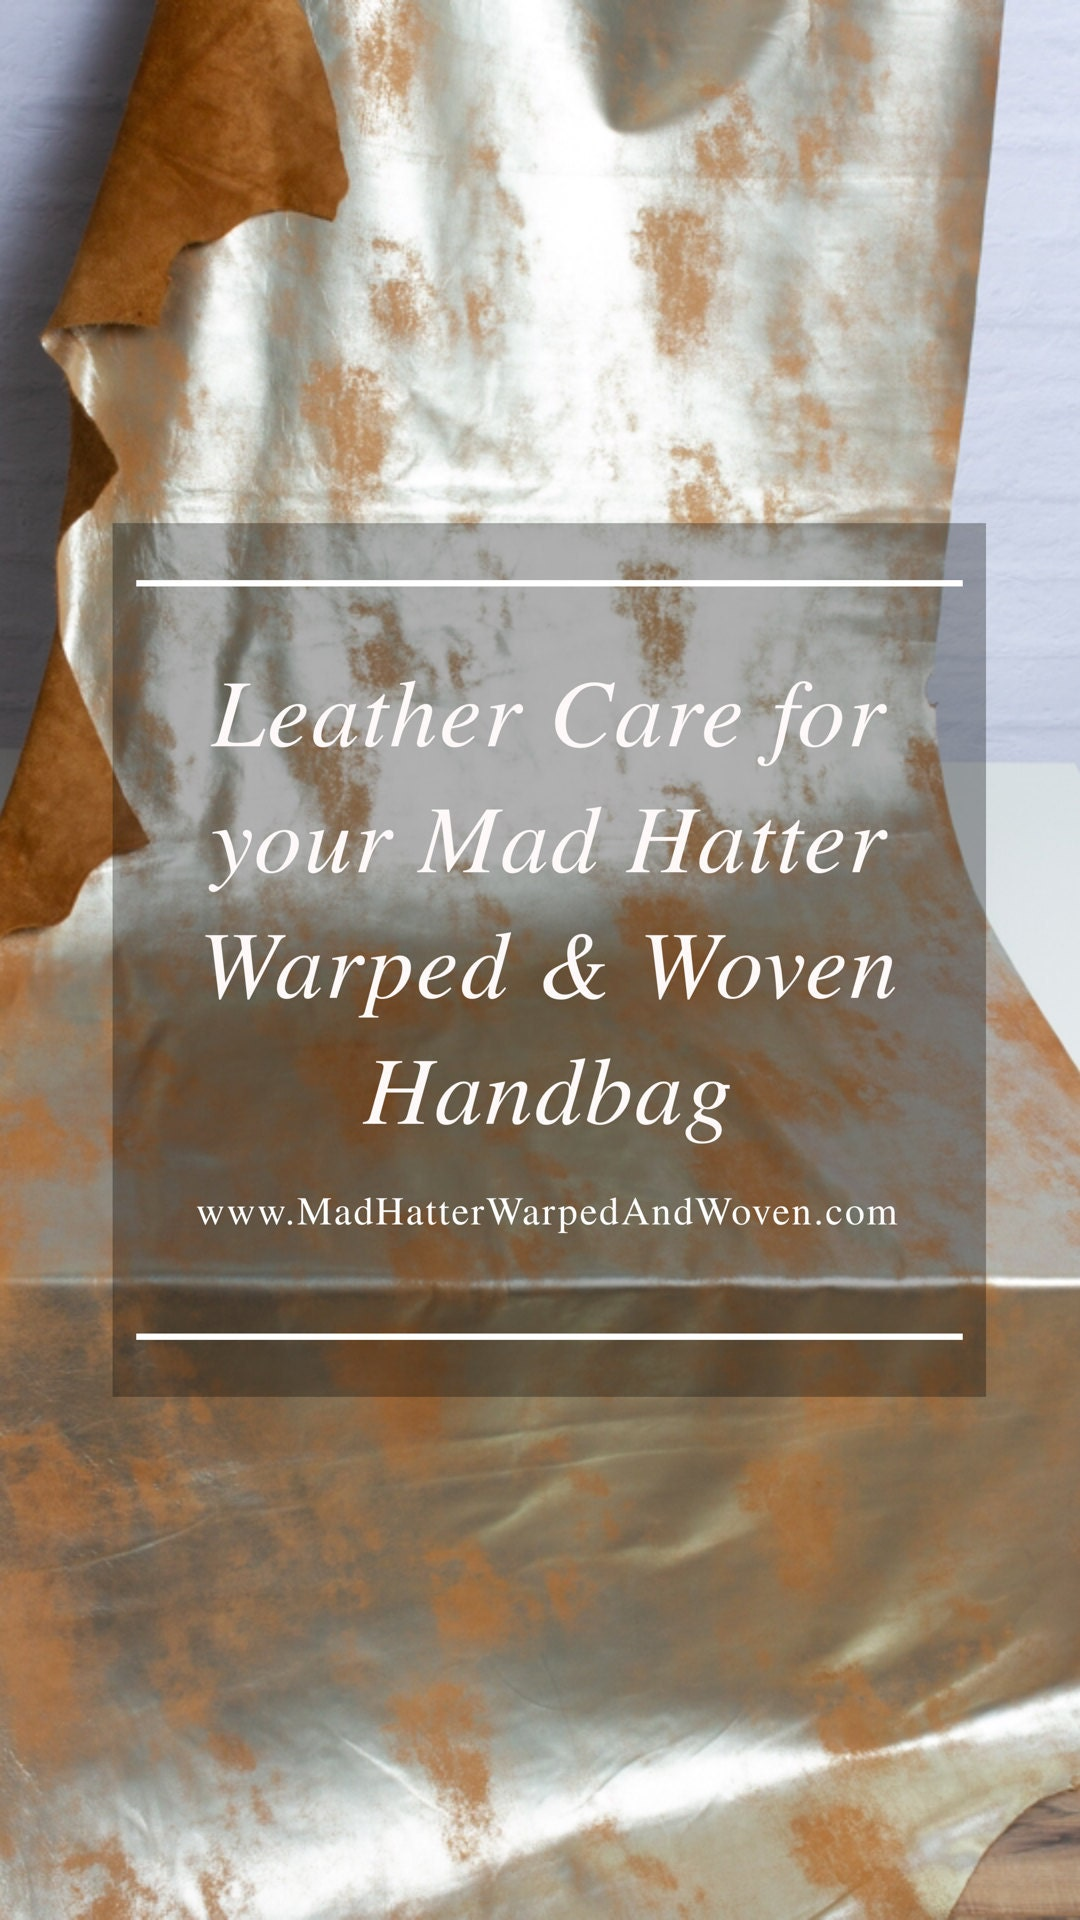 Photo of hide of leather in gold foil leather. In front of leather is text that reads Leather Care for your Mad Hatter Warped & Woven Handbag. www.MadHatterWarpedAndWoven.com